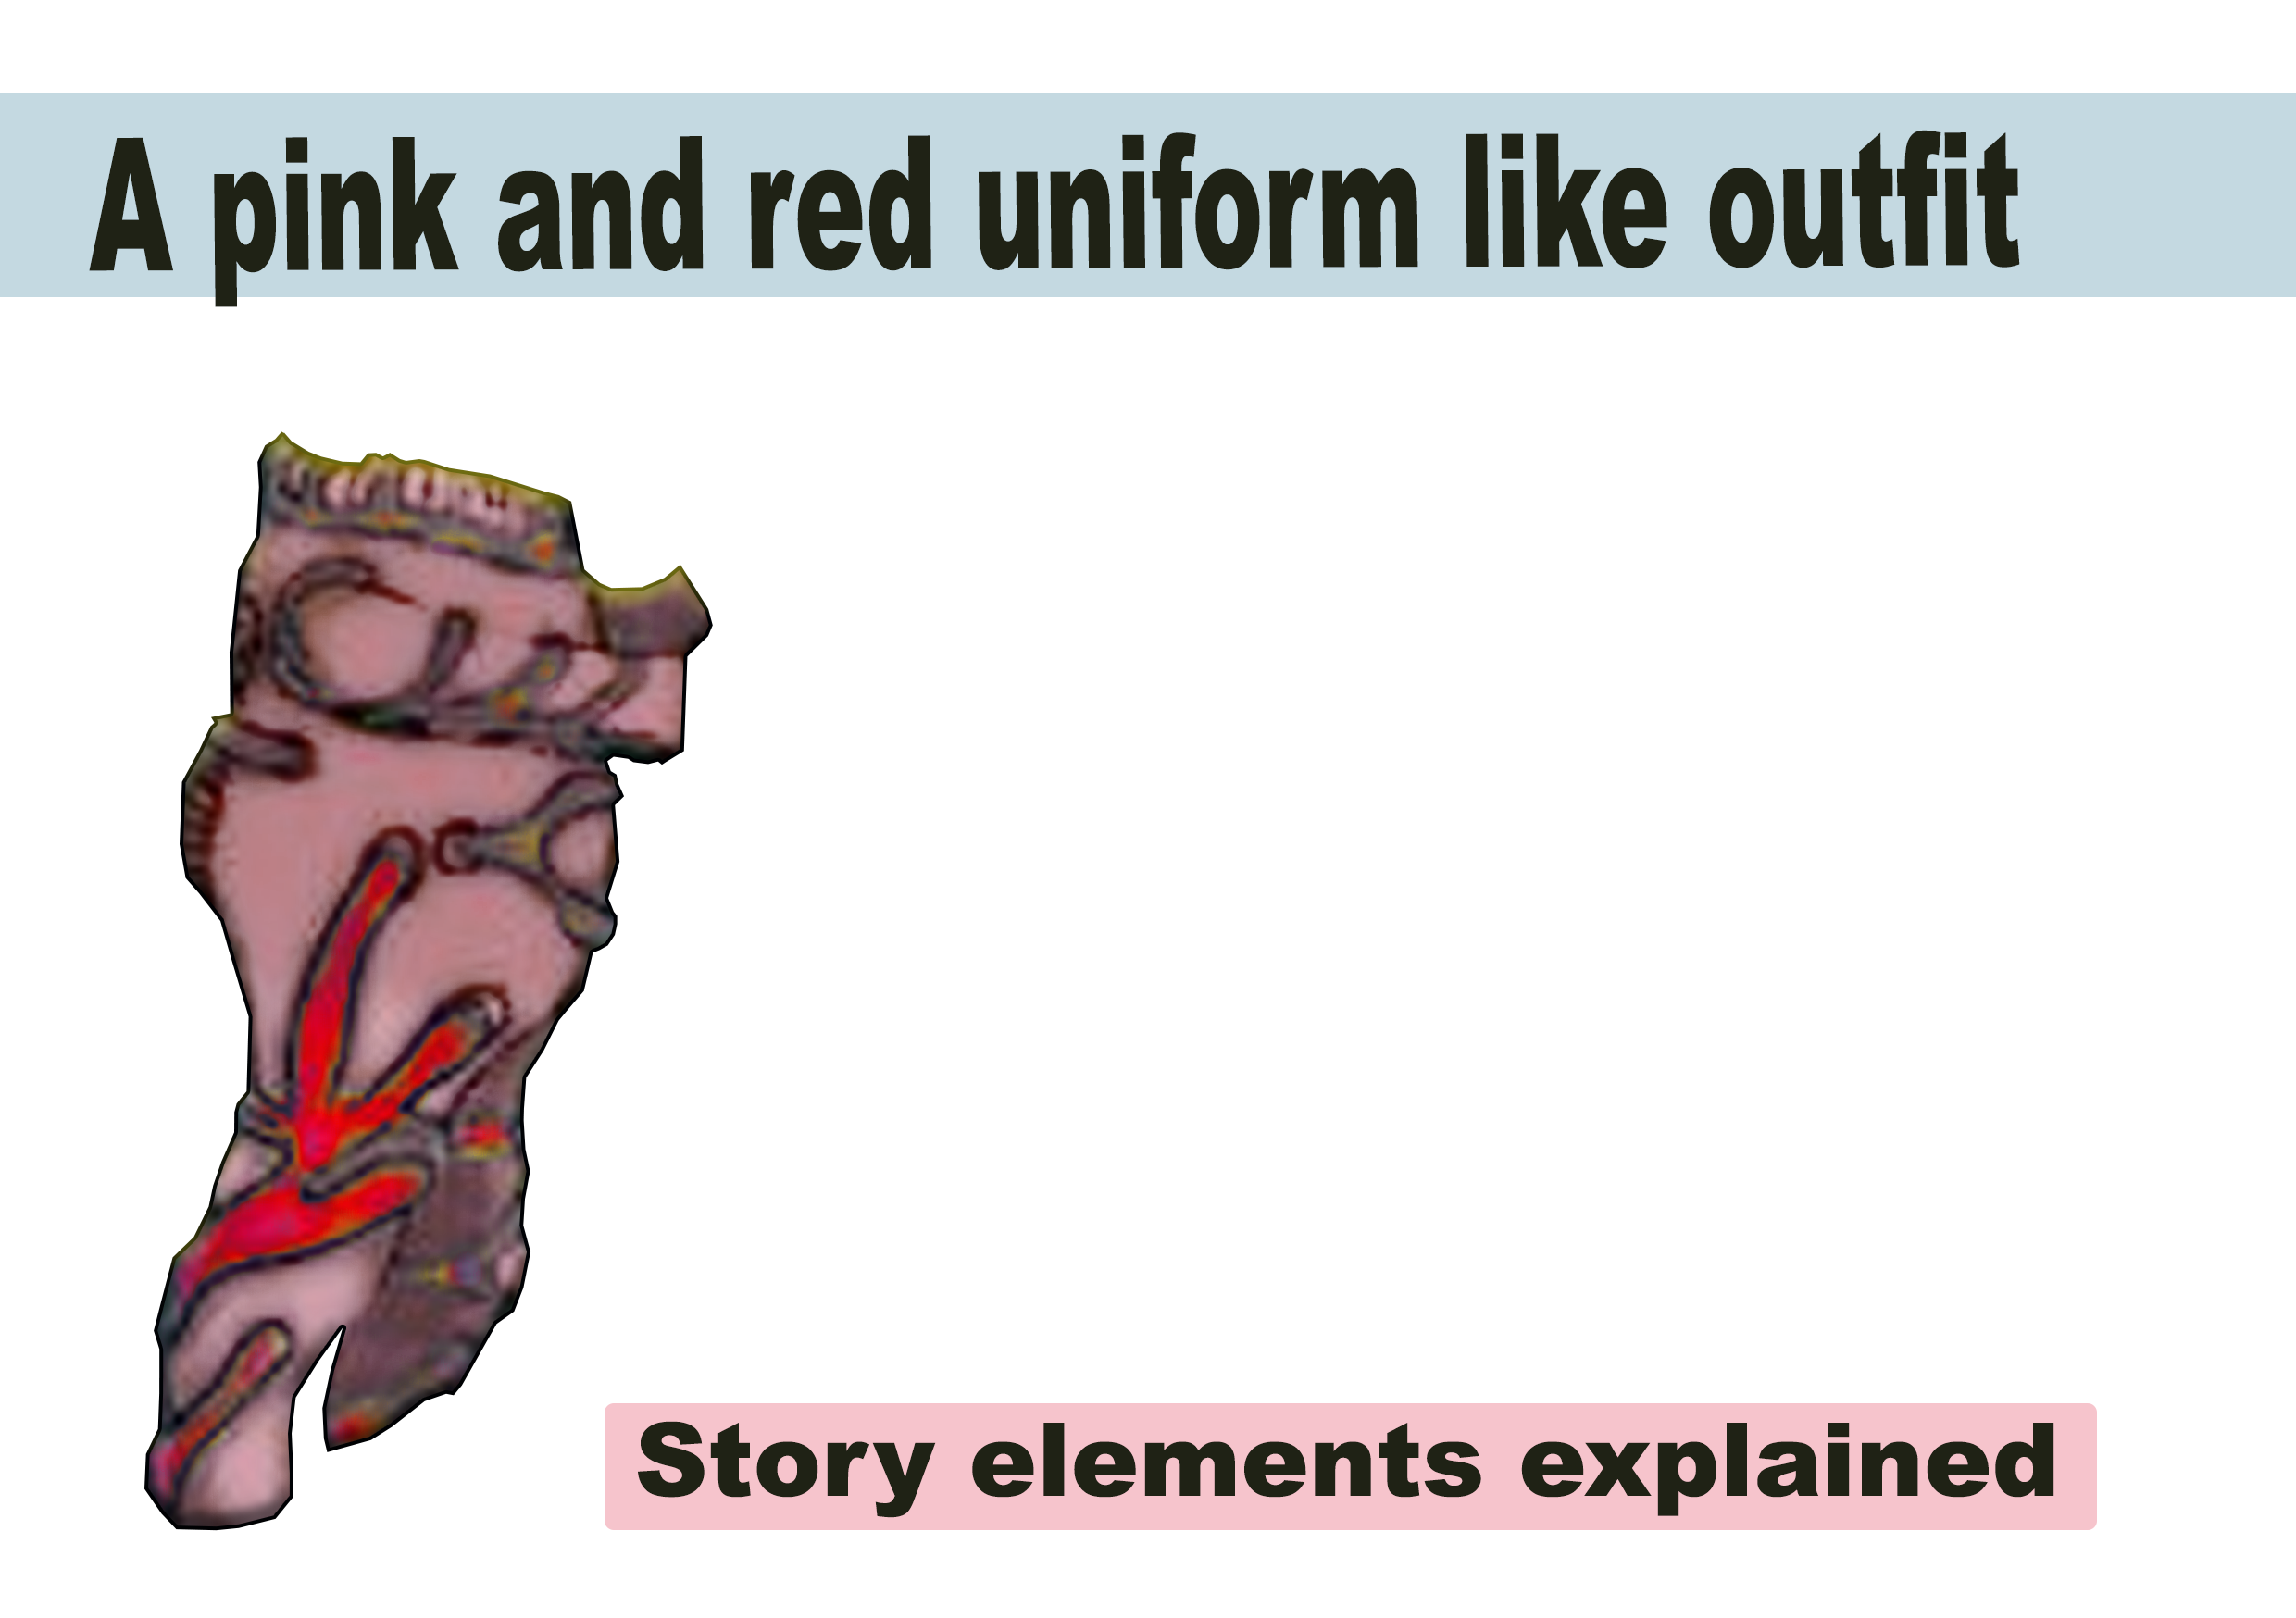 A pink and red uniform like outfit